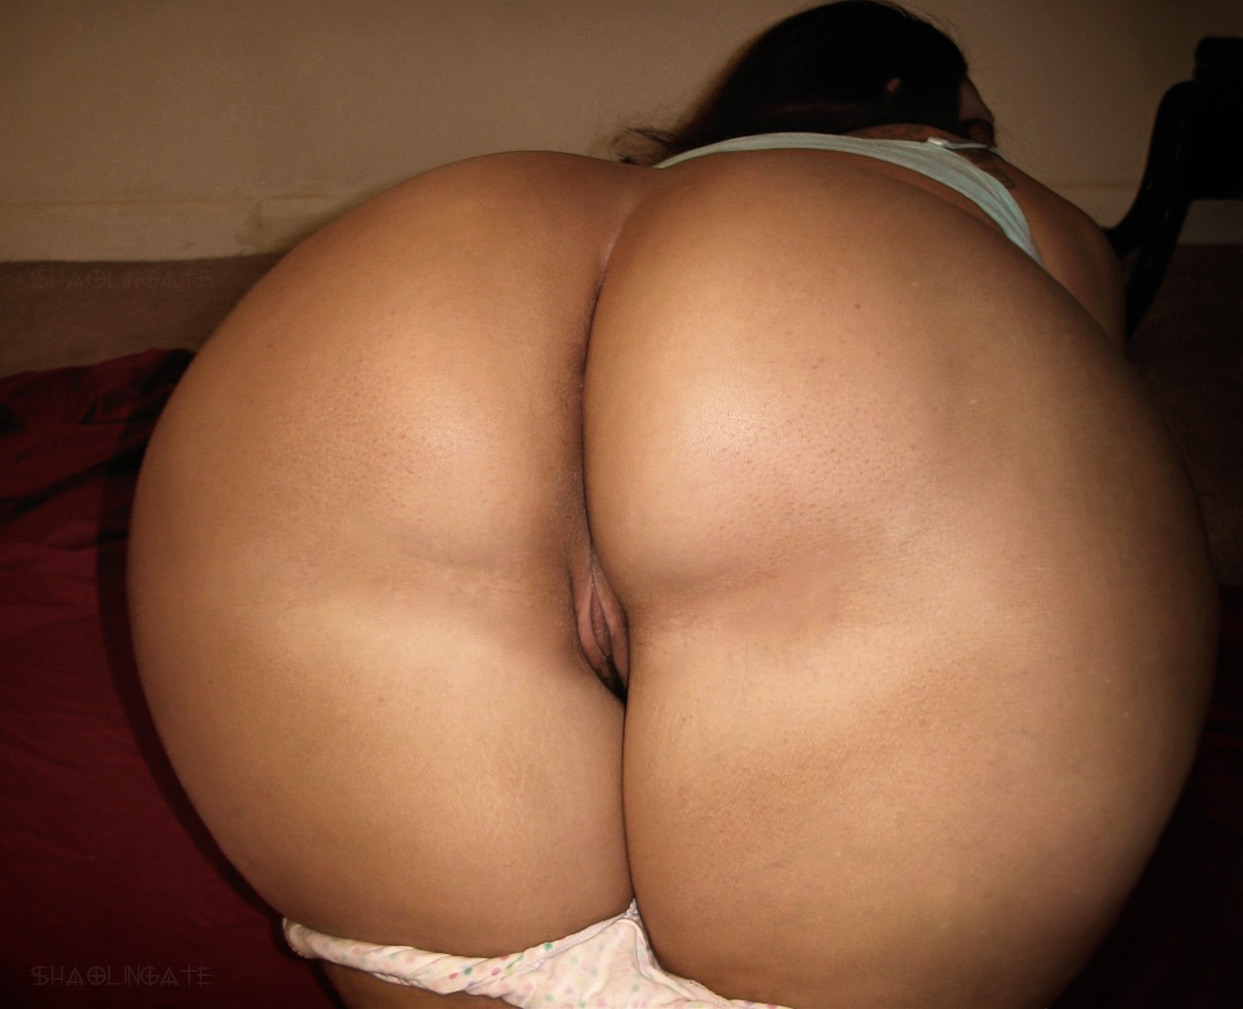 Her Latina phat ass booty Doll